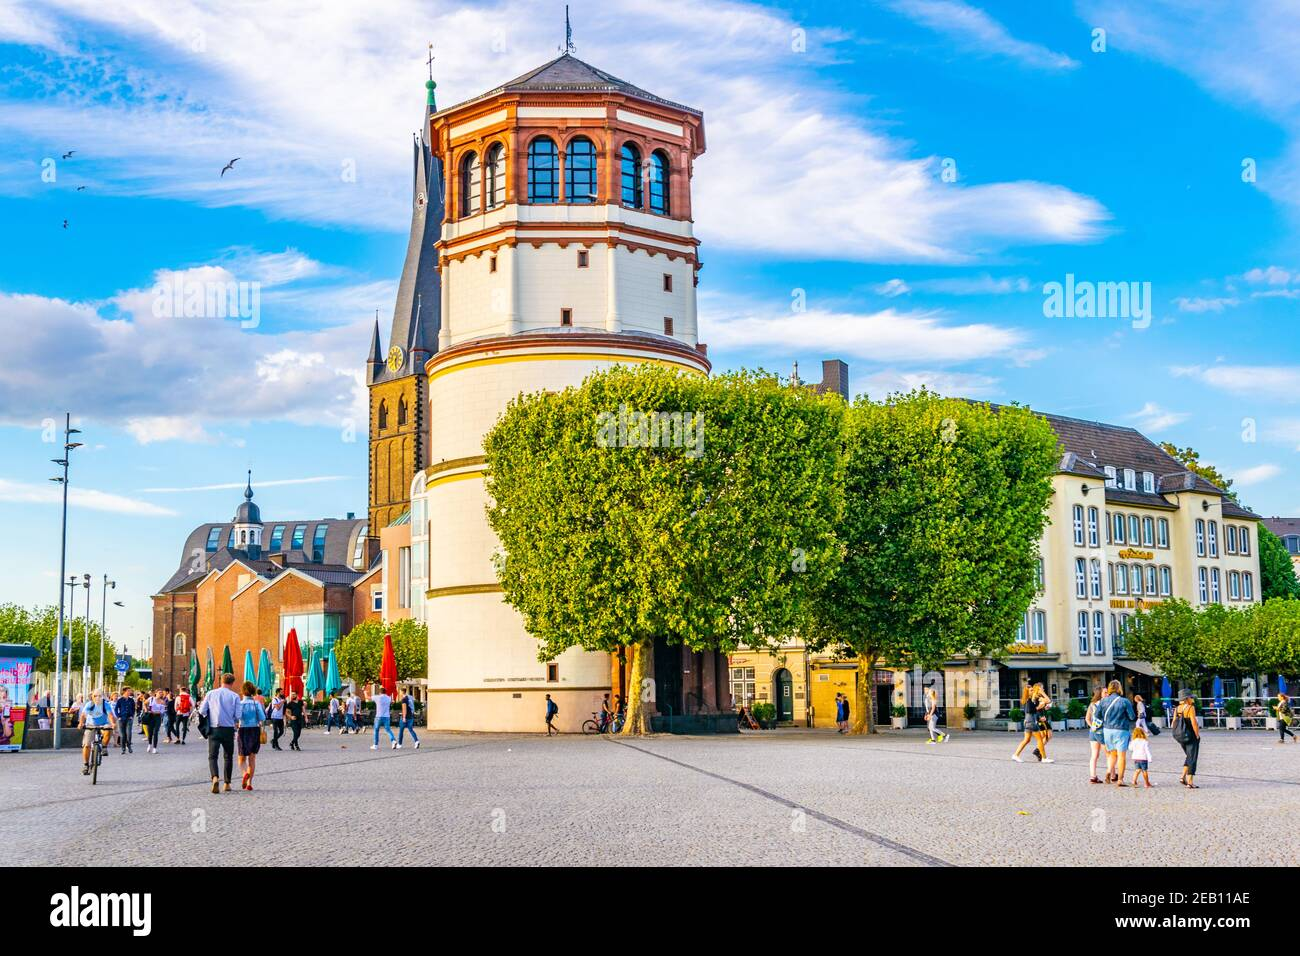 DUSSELDORF, GERMANY, AUGUST 10, 2018: View of Burgplatz with Schifffahrt museum and Saint Lambertus church in Dusseldorf, Germany Stock Photo